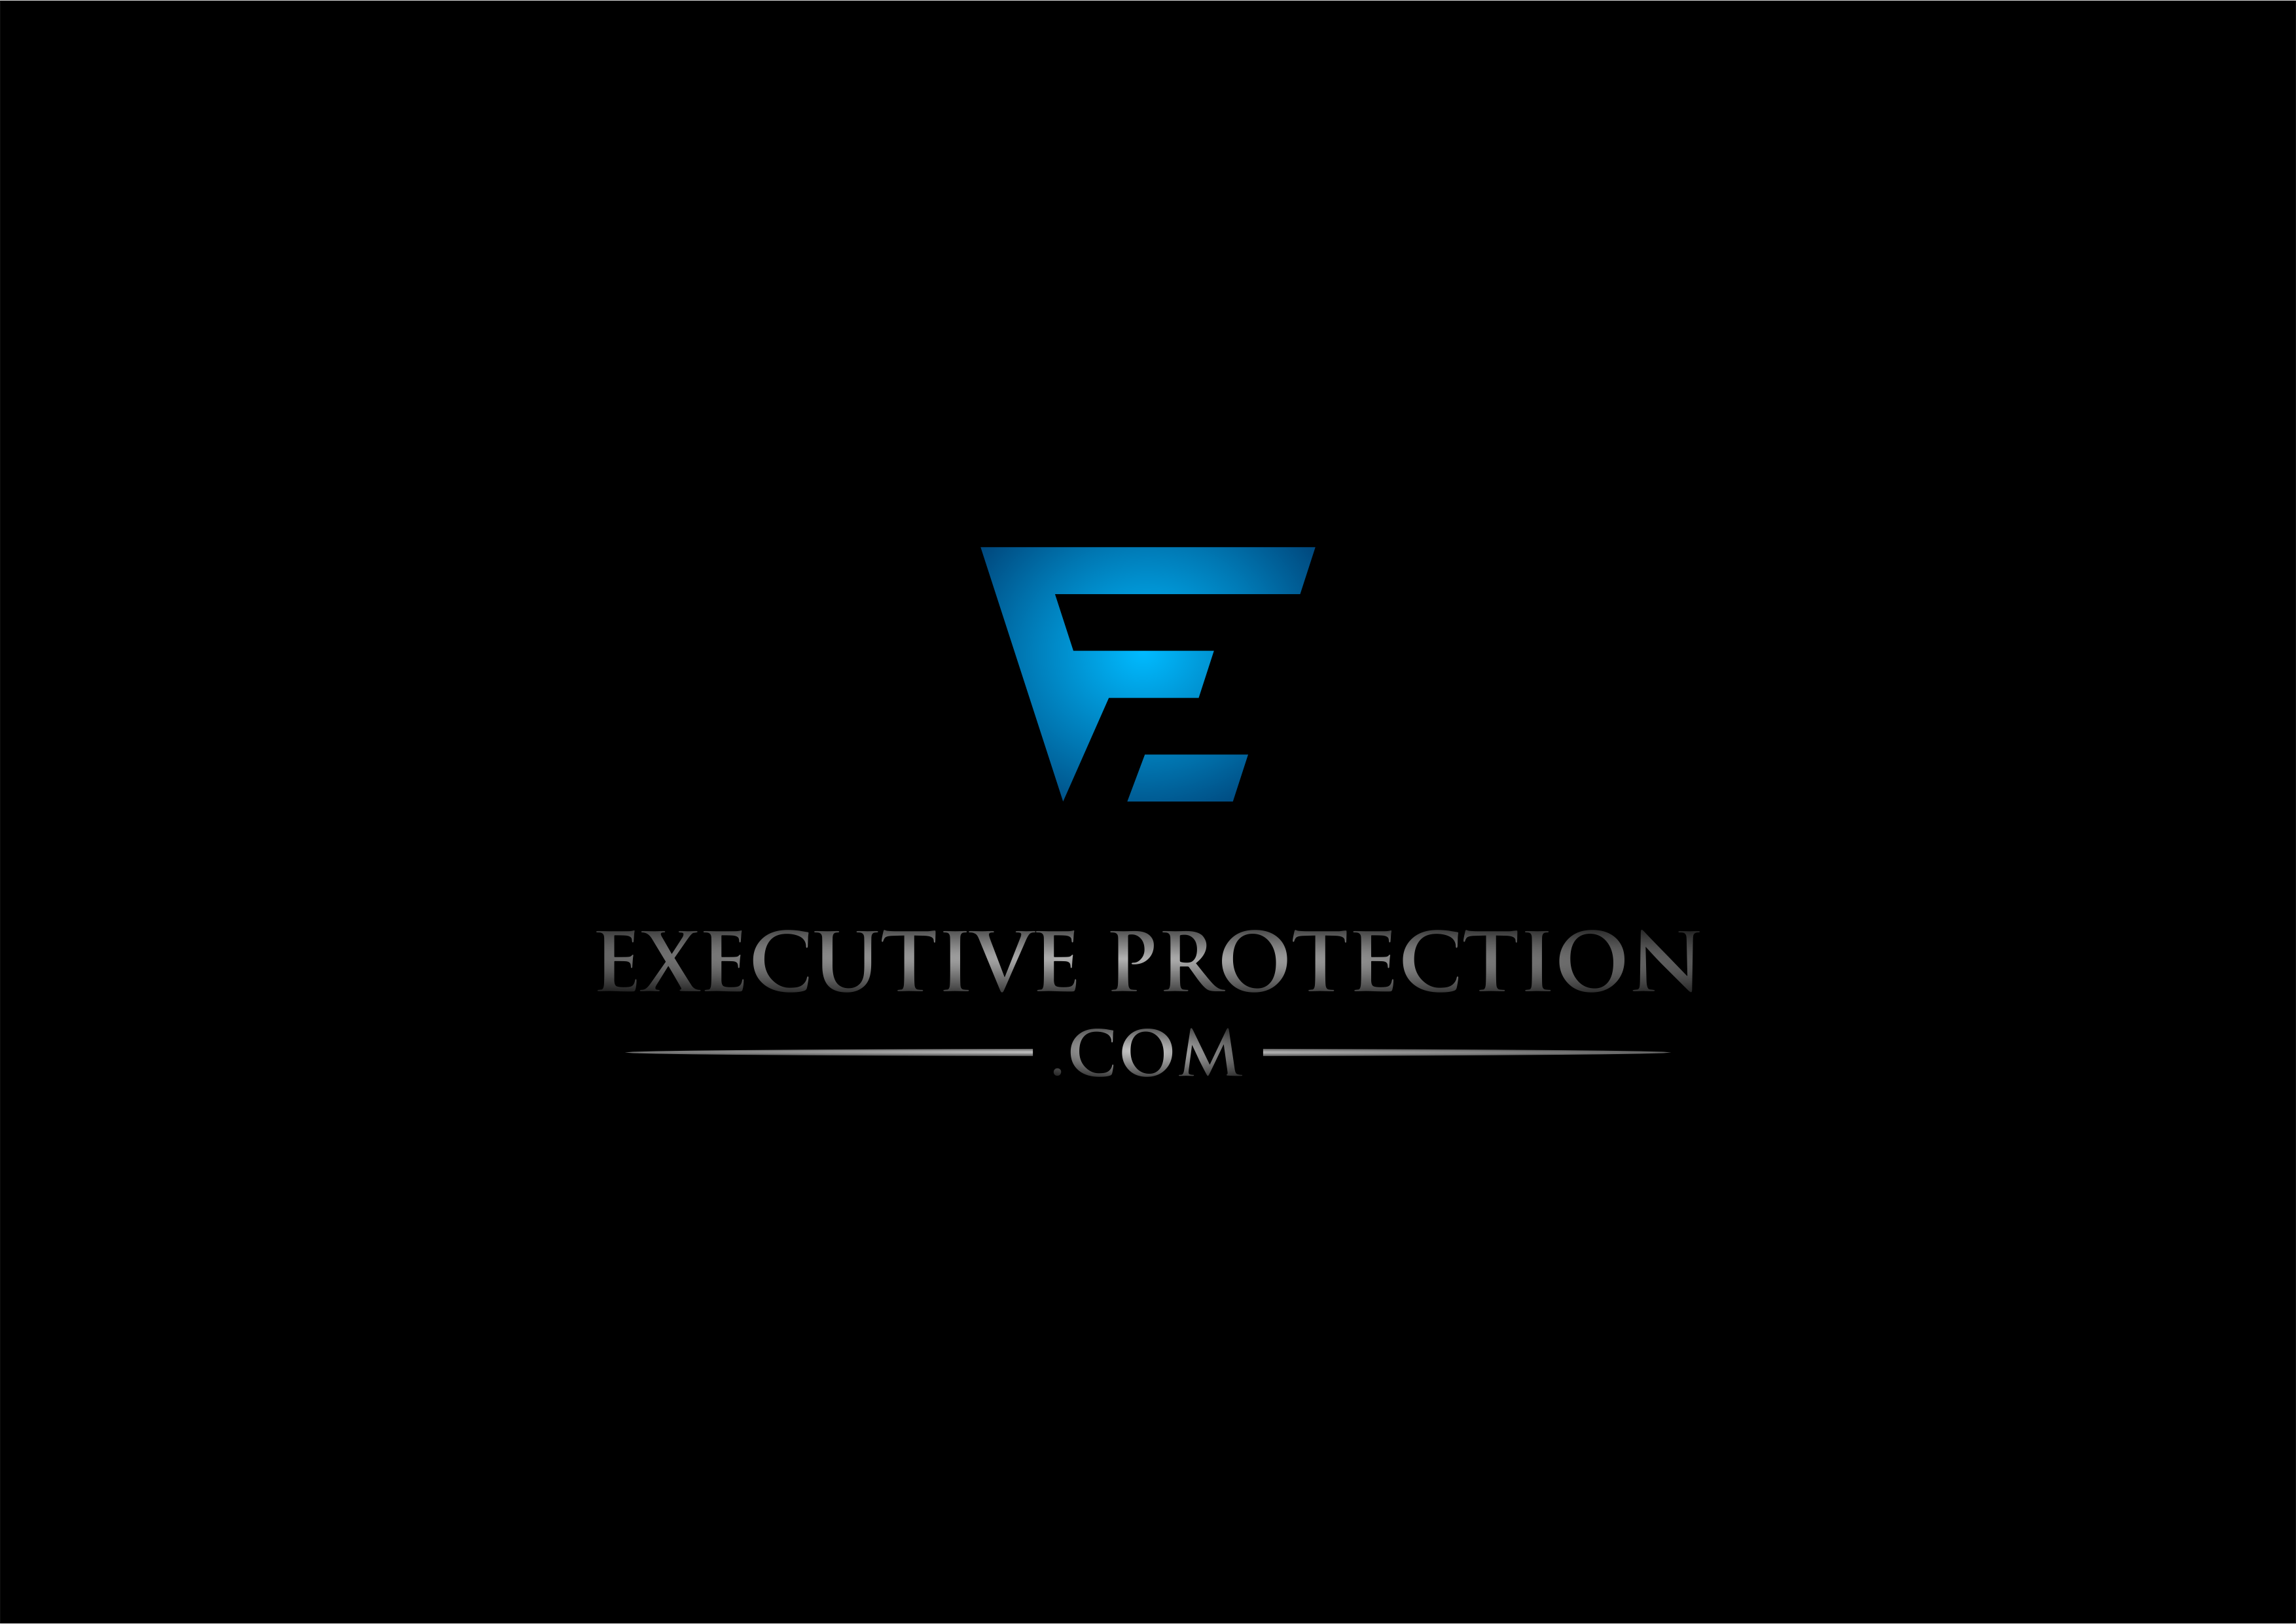 Help Us Lead the Executive Protection Industry In A Great Direction